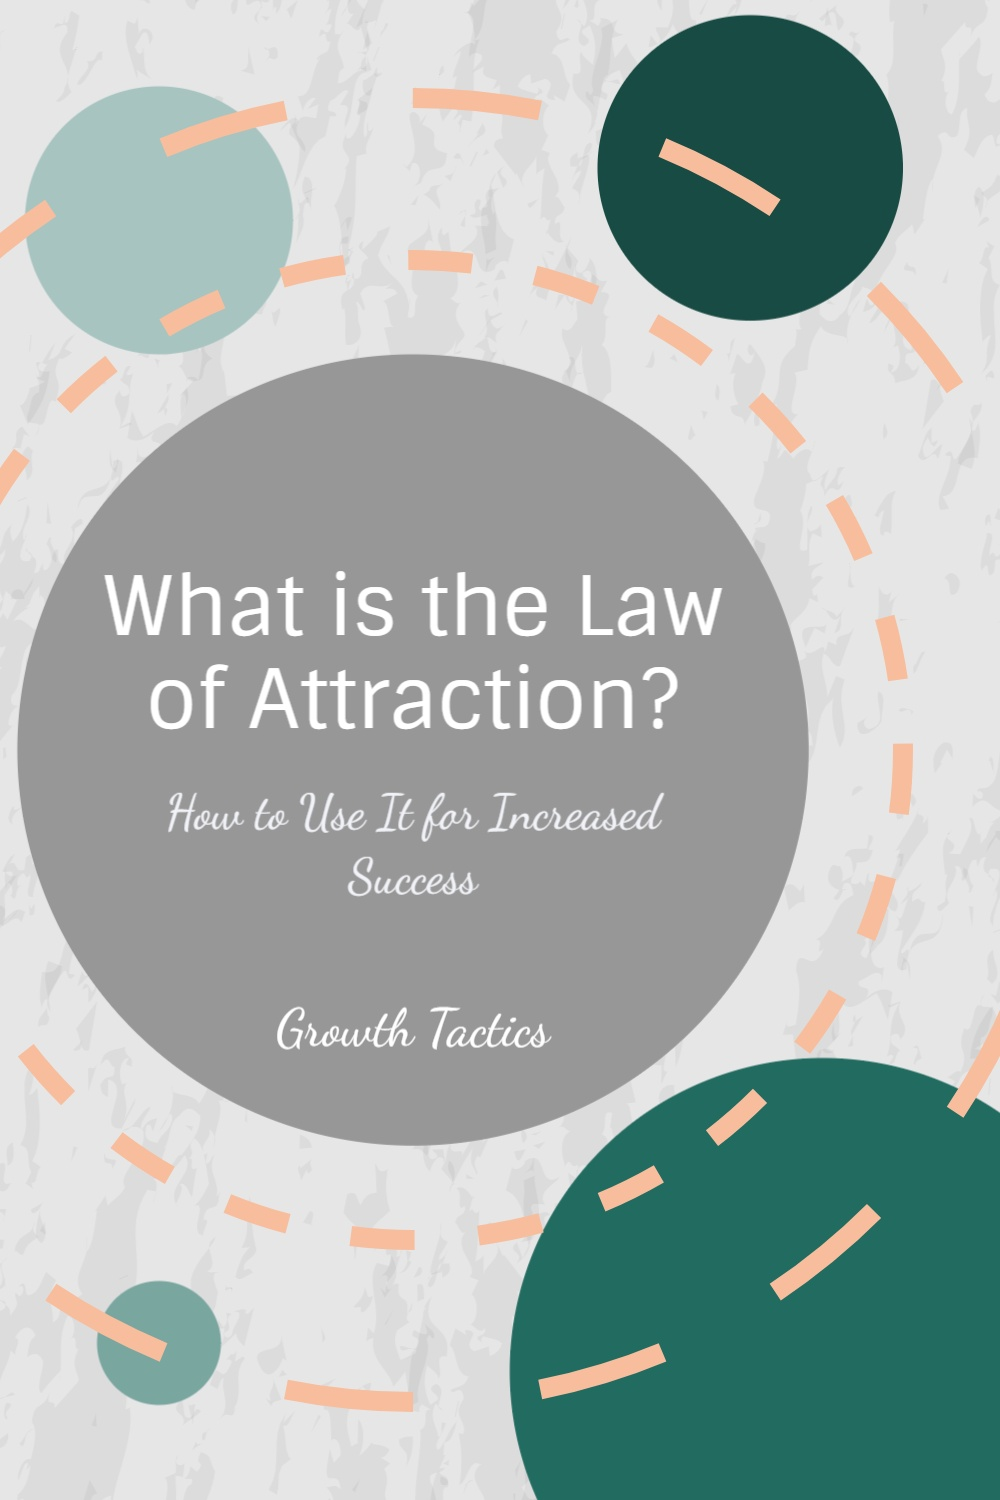 What is the Law of Attraction and Why Does Oprah Winfrey Use It Daily to See Huge Success in Her Life